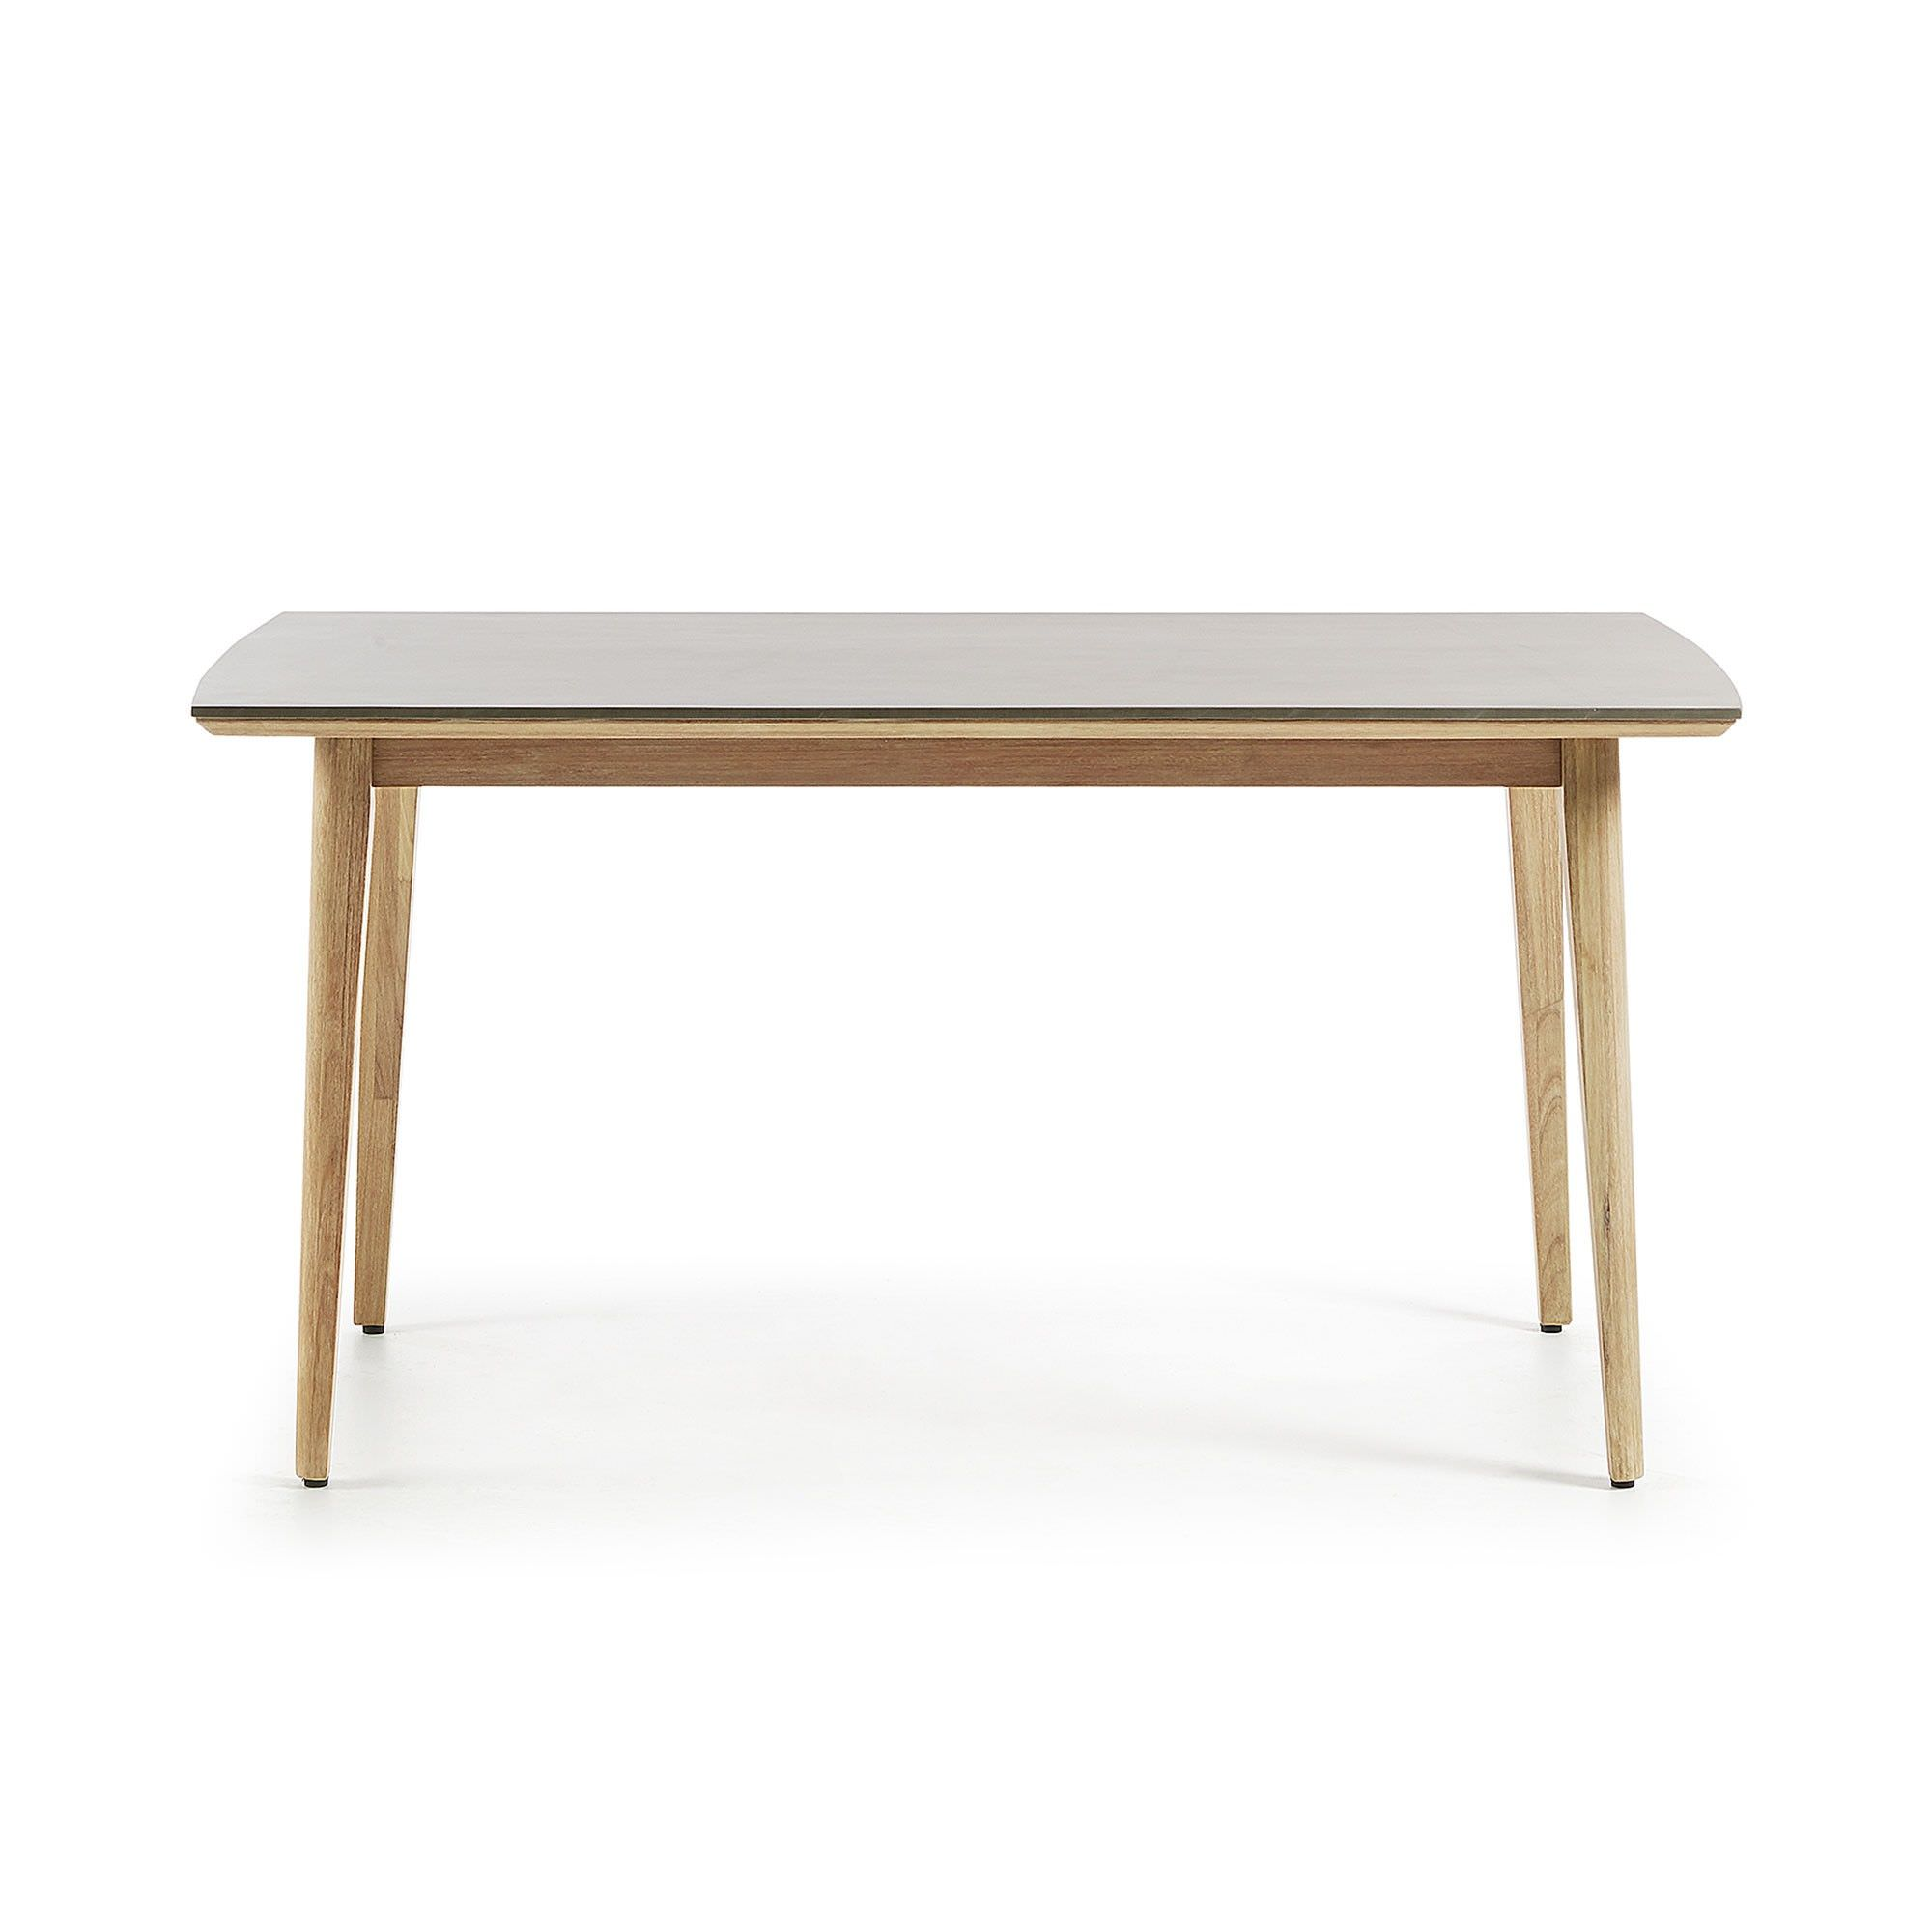 Kingsley Polycement Top Eucalyptus Timber Indoor / Outdoor Dining Table, 160cm